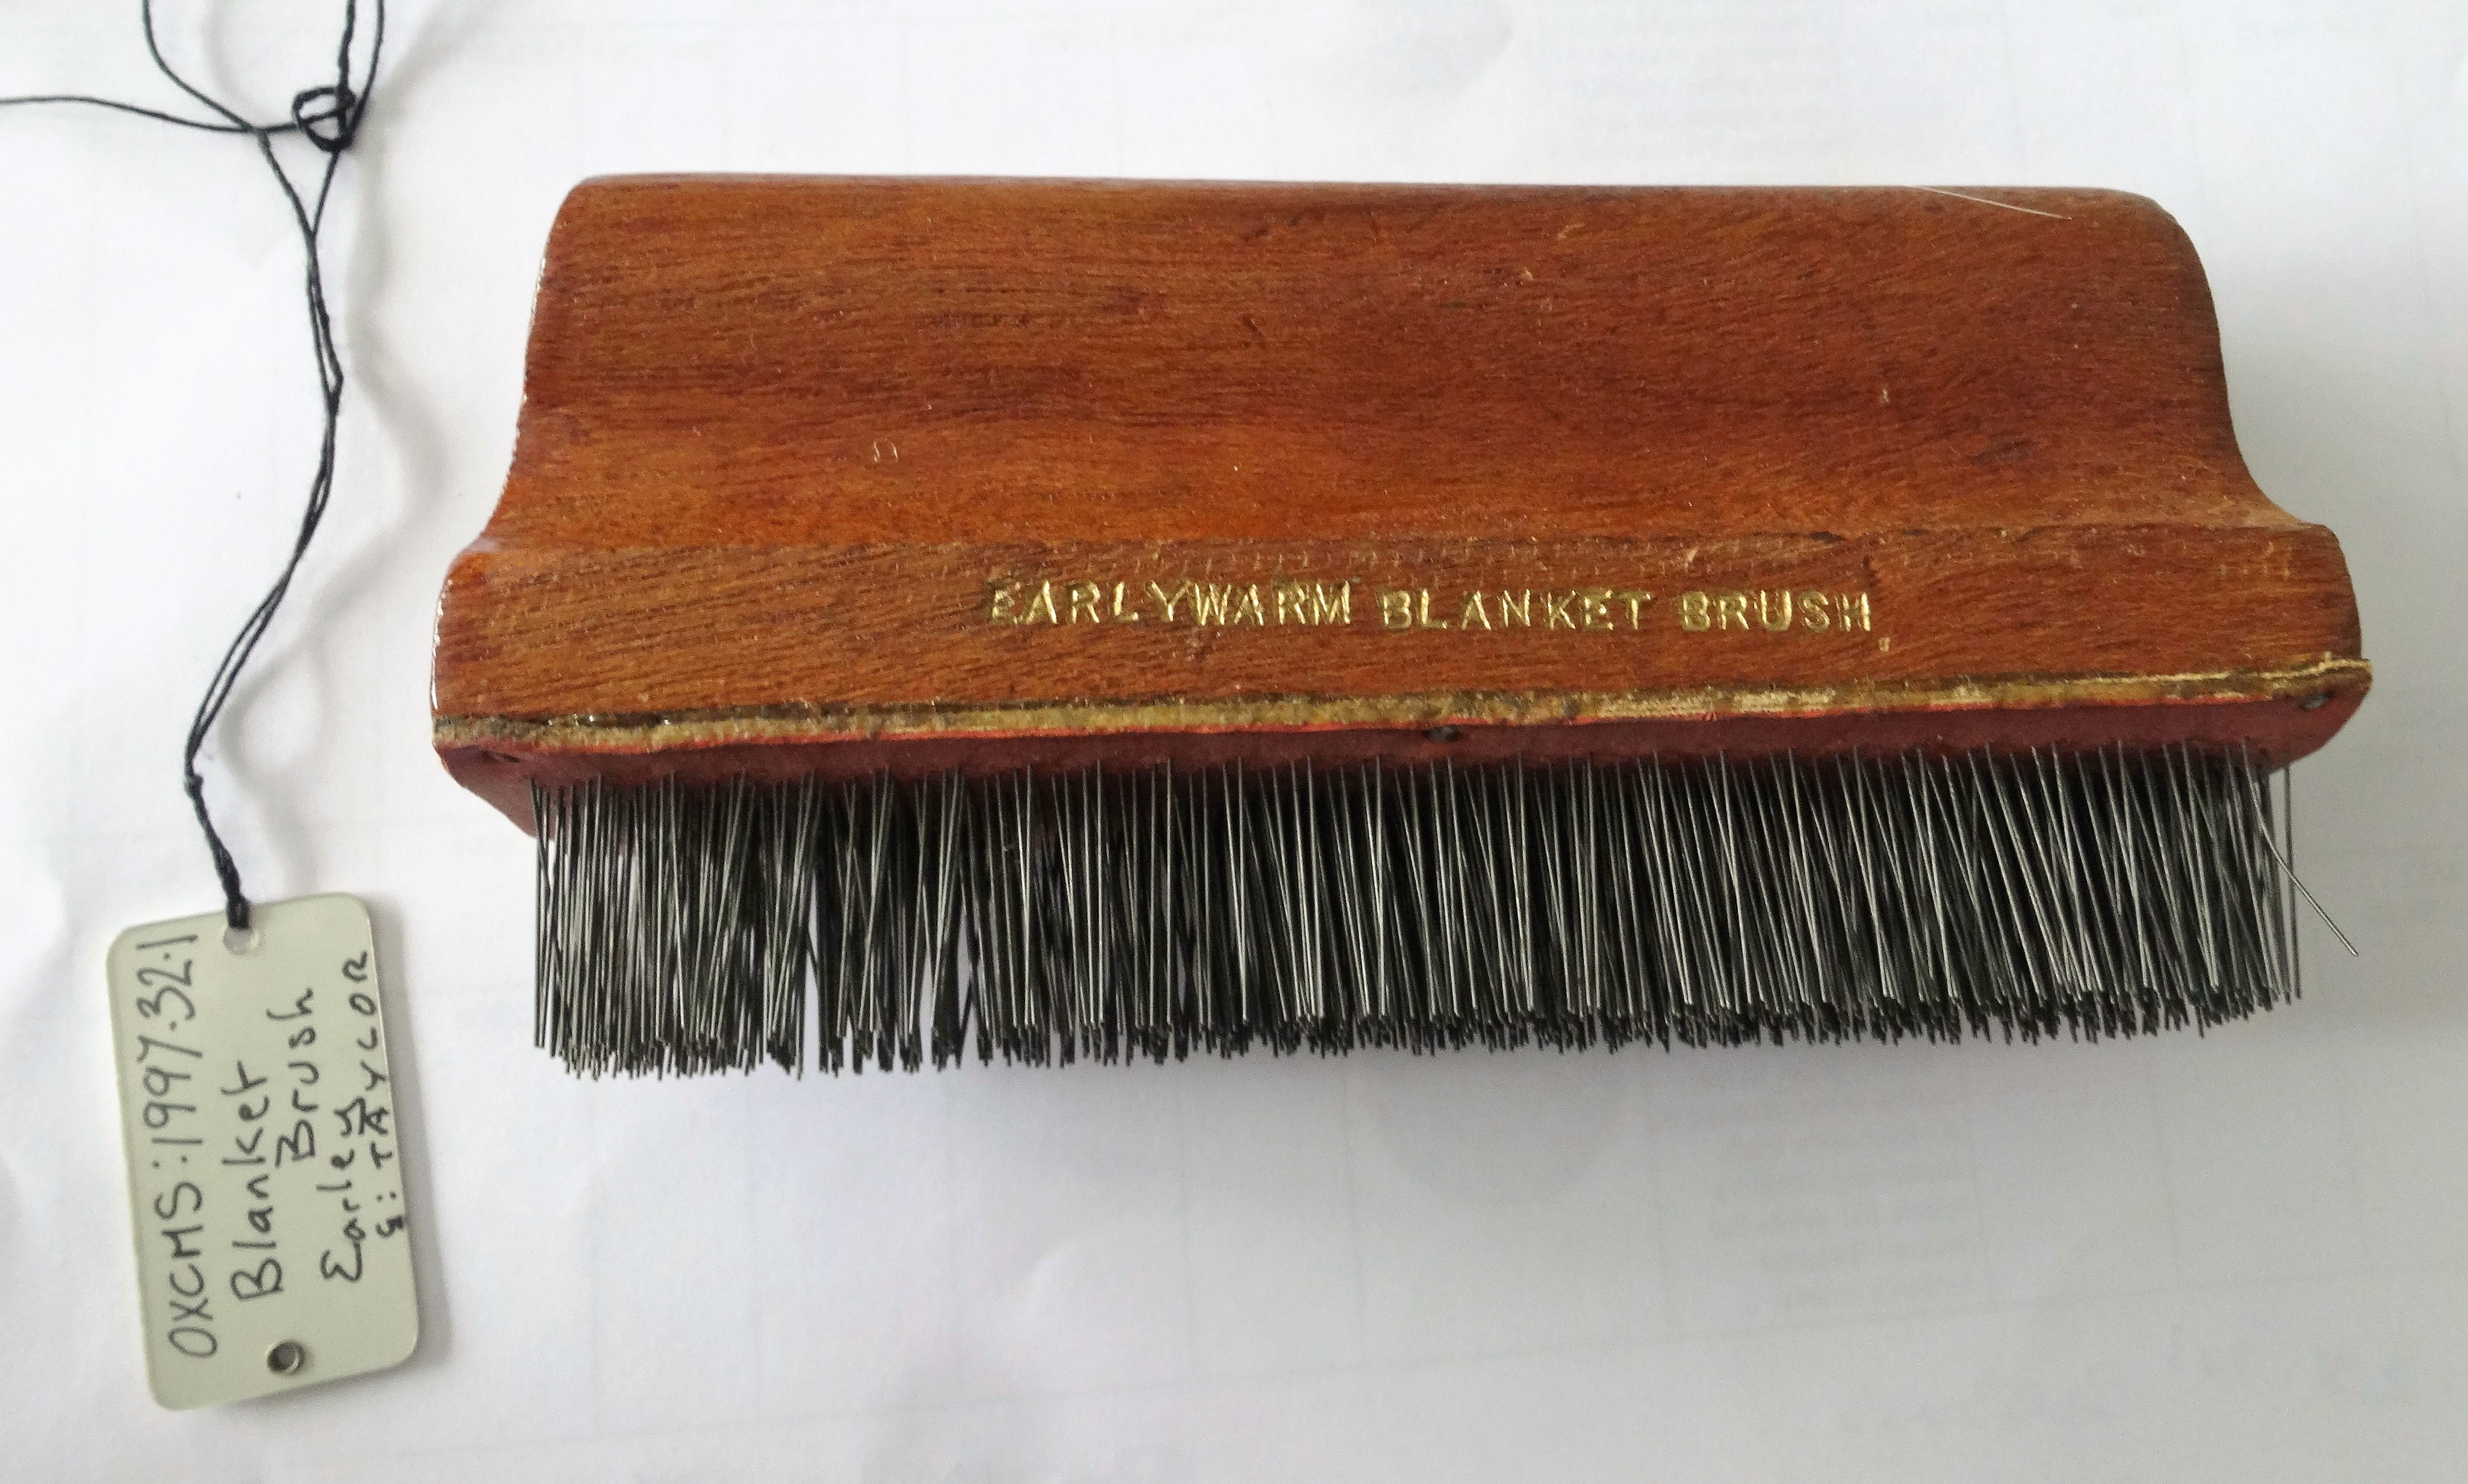 Witney blanket brush - Oxfordshire Museum resource centre